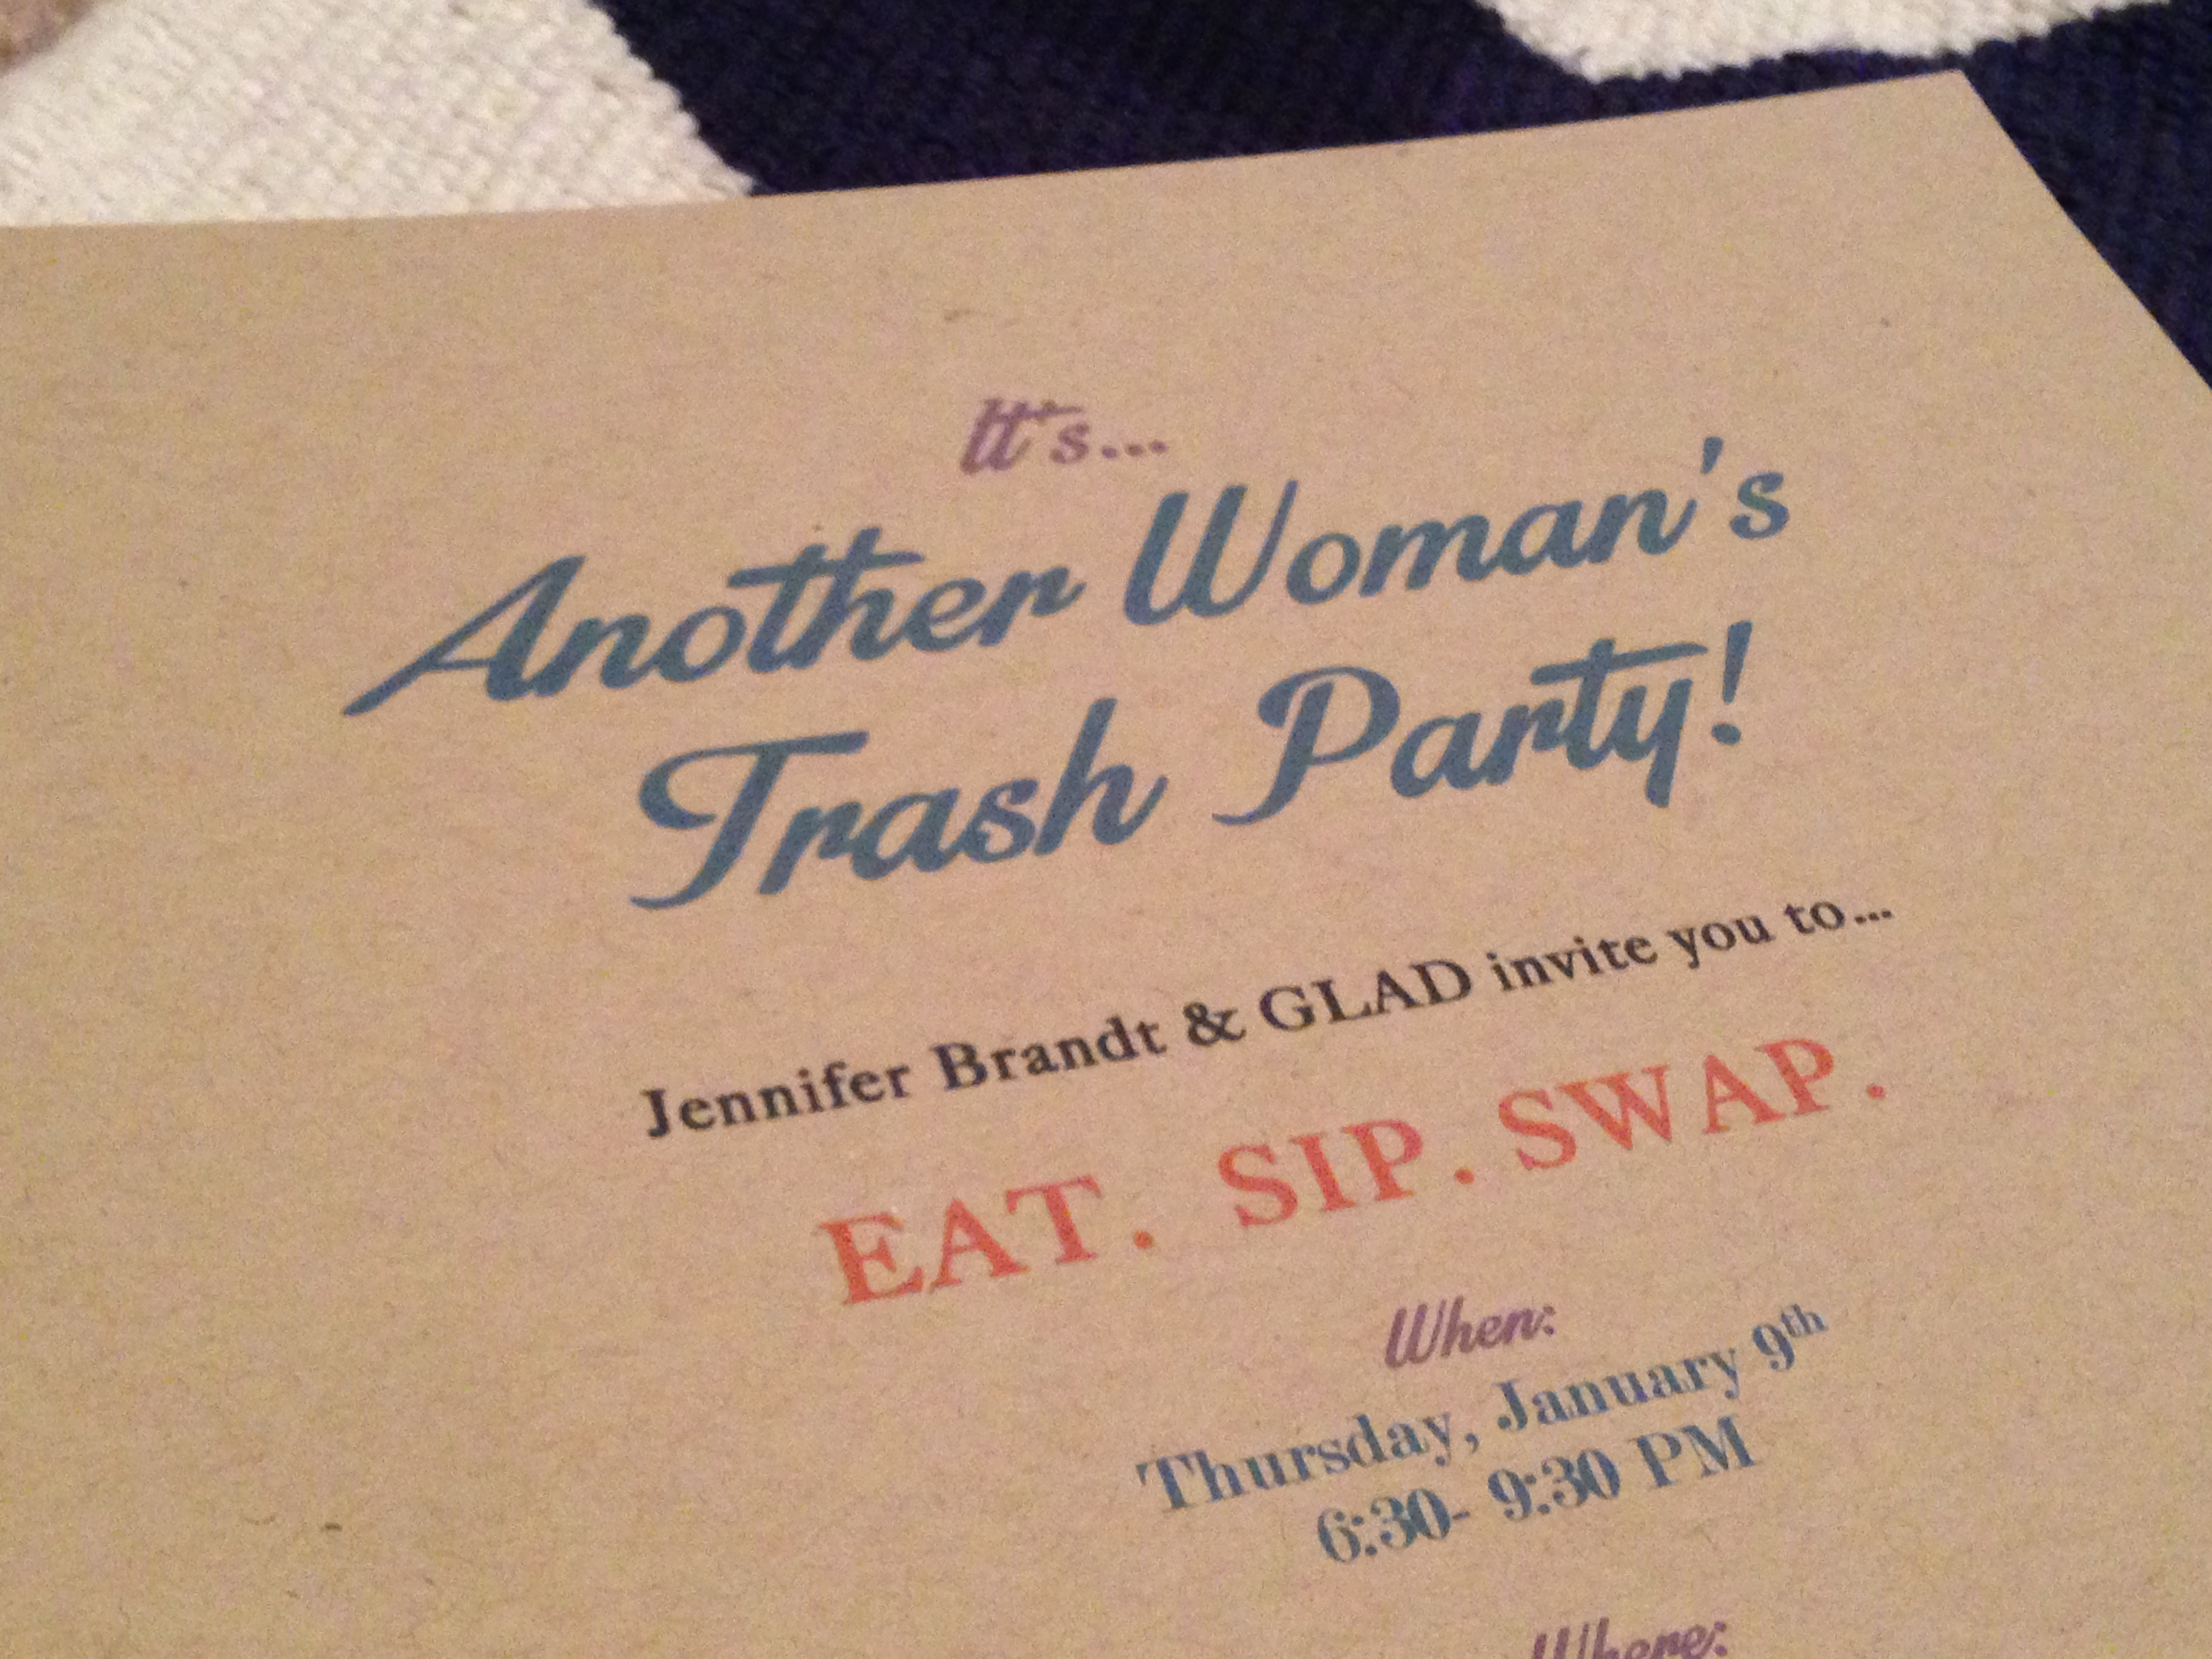 CLOTHING SWAP PARTY WITH GLAD® | Perfectly Disheveled